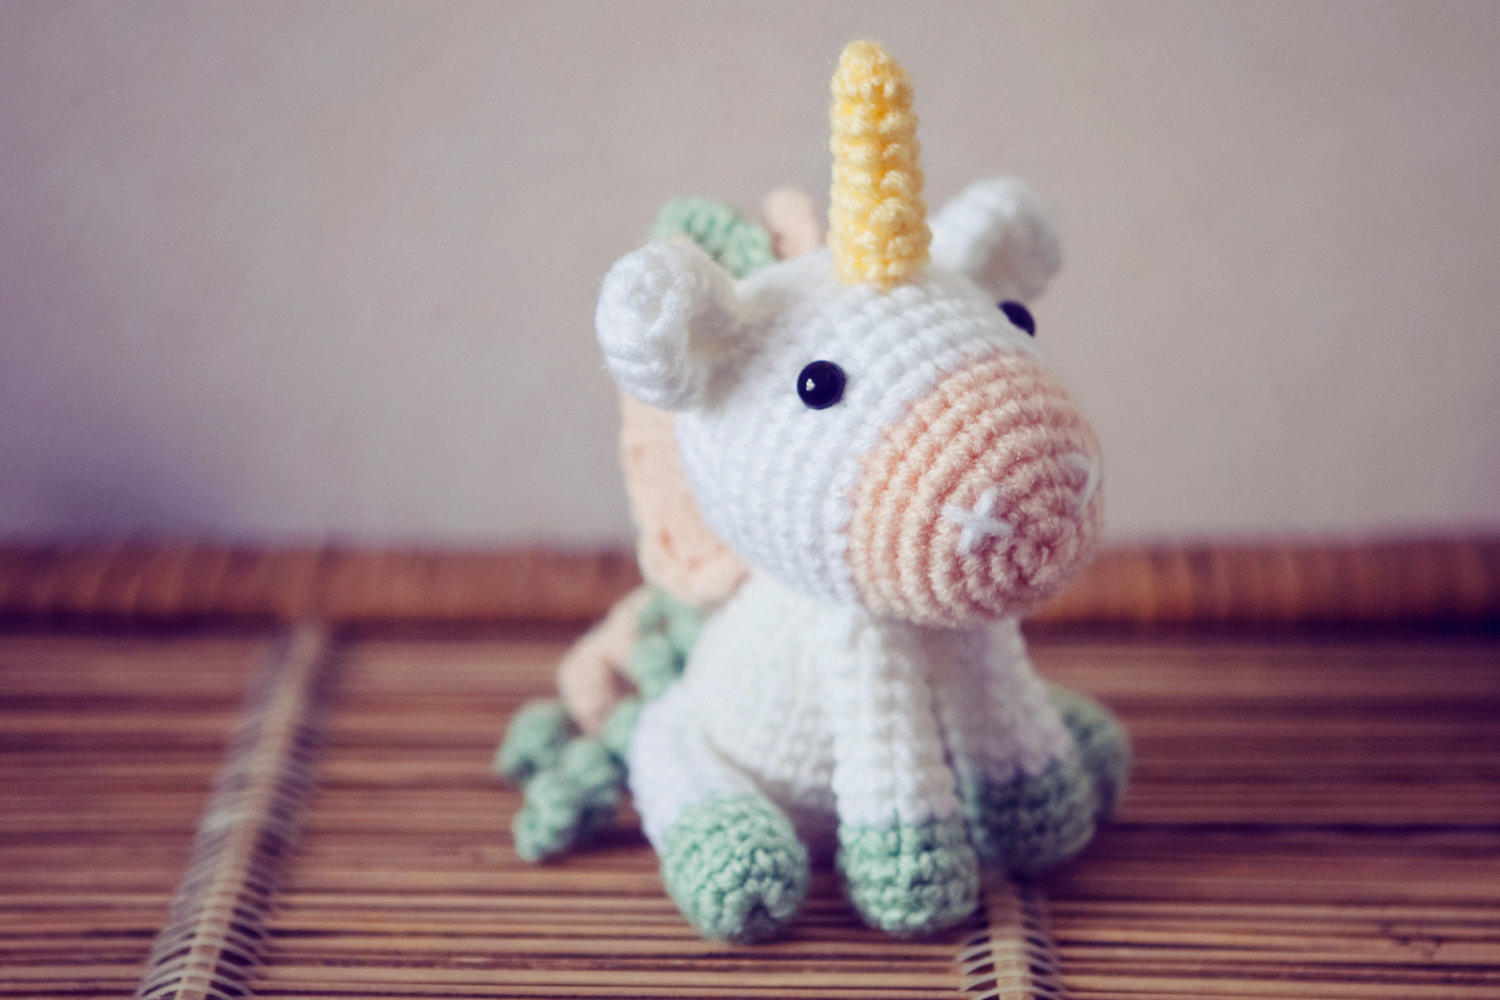 Crochet Unicorn : Amigurumi Unicorn Crochet from CircusCrochet on Etsy Misc. Home